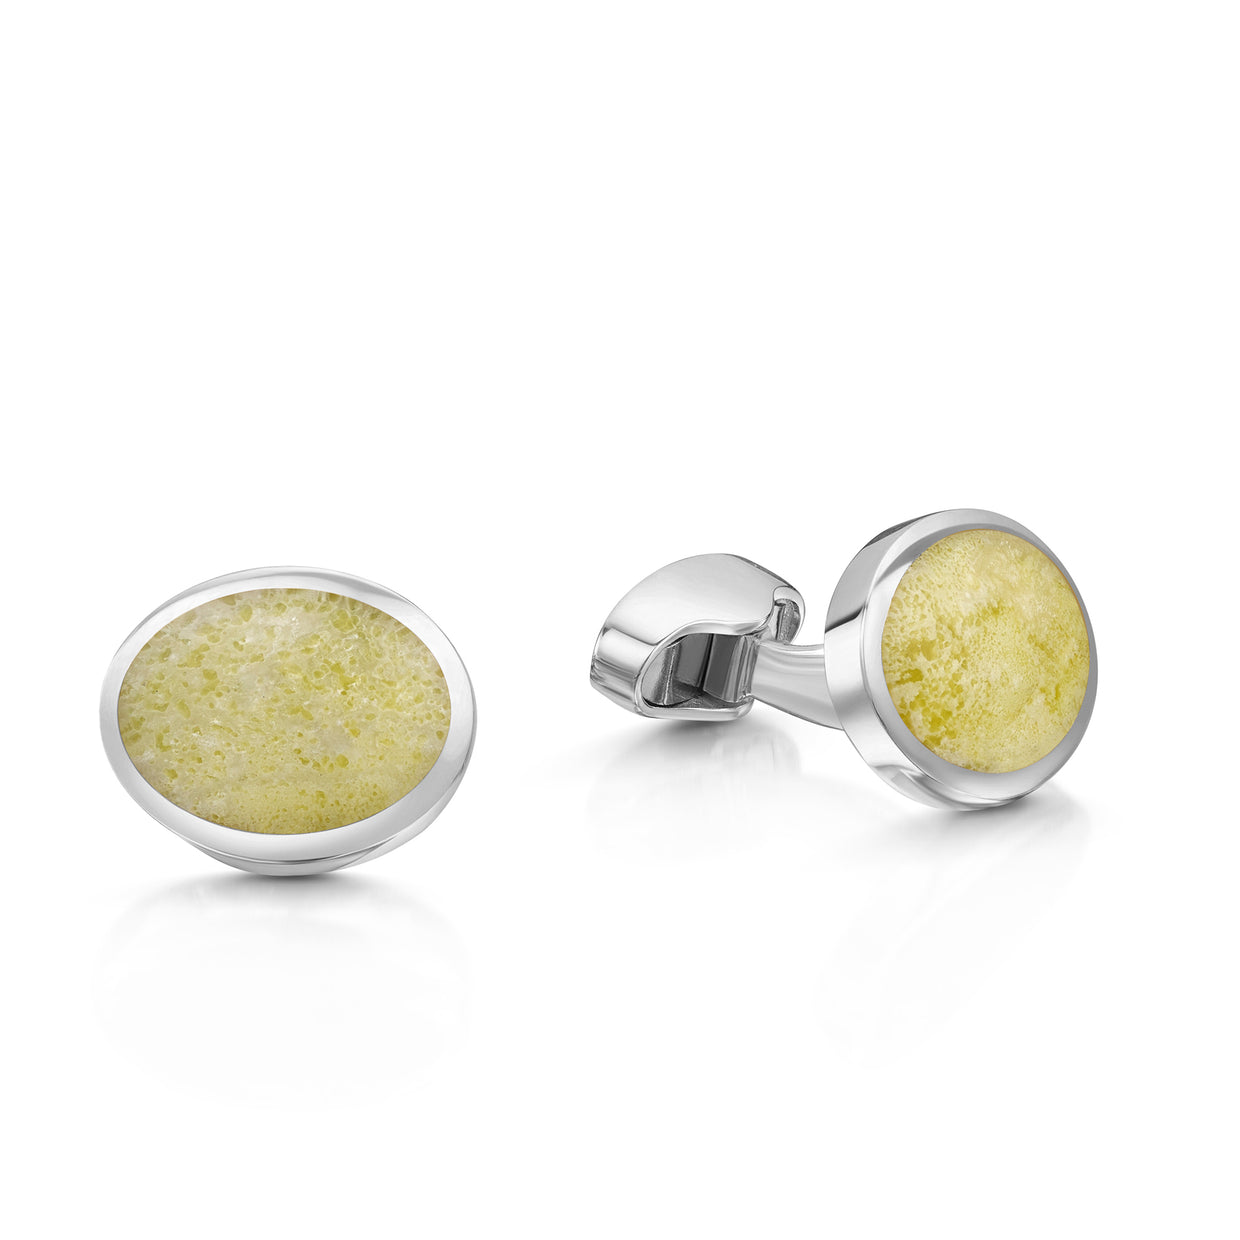 Isle of Iona Marble Cufflinks-Hamilton & Inches